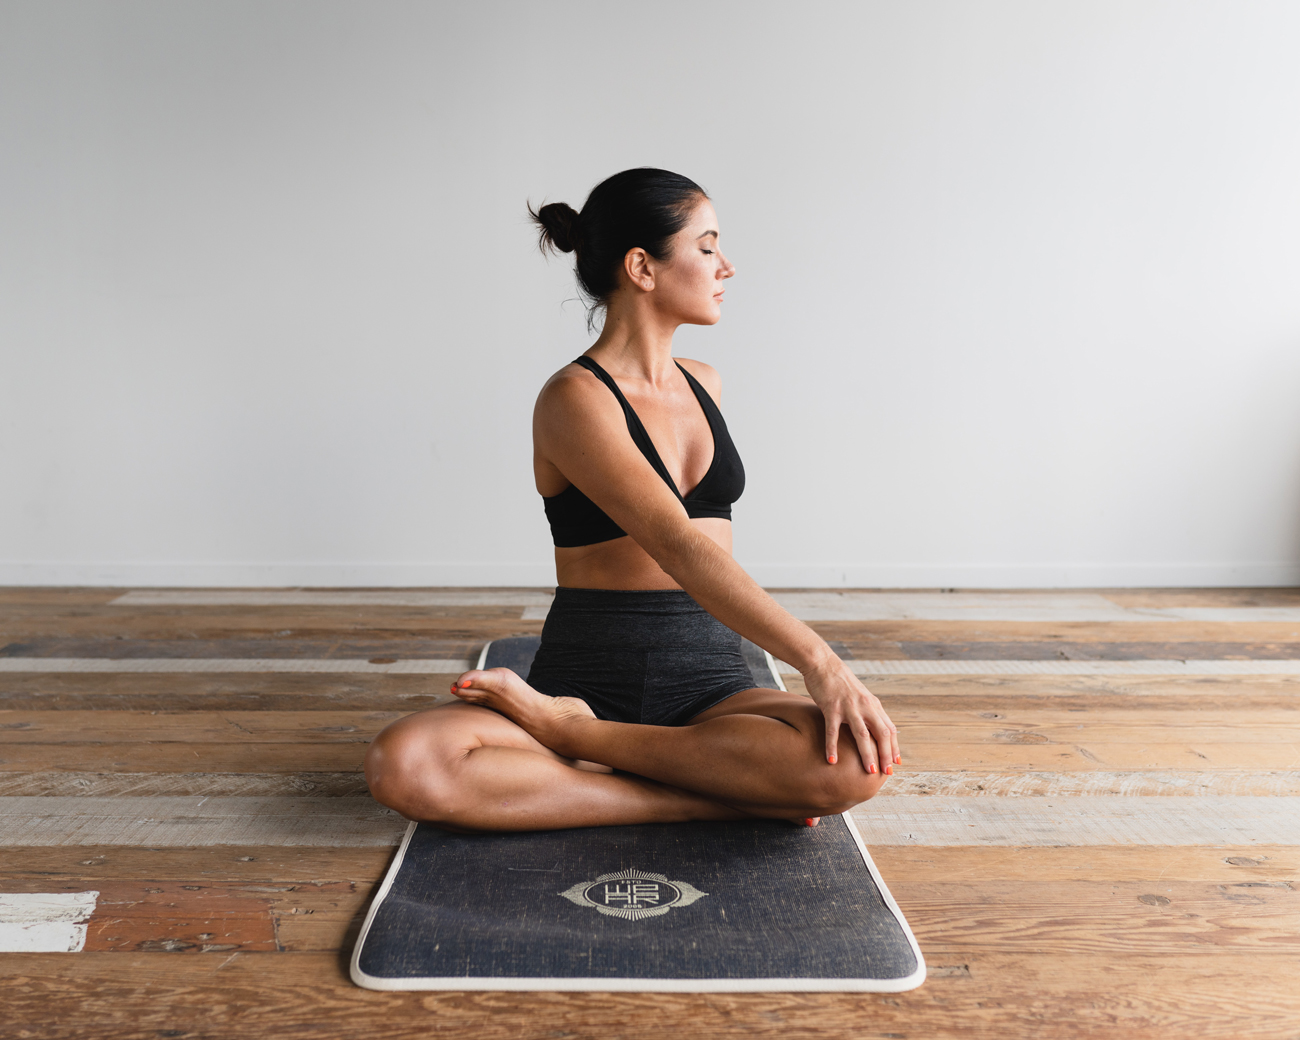 A woman sitting on a yoga mat doing a back stretch